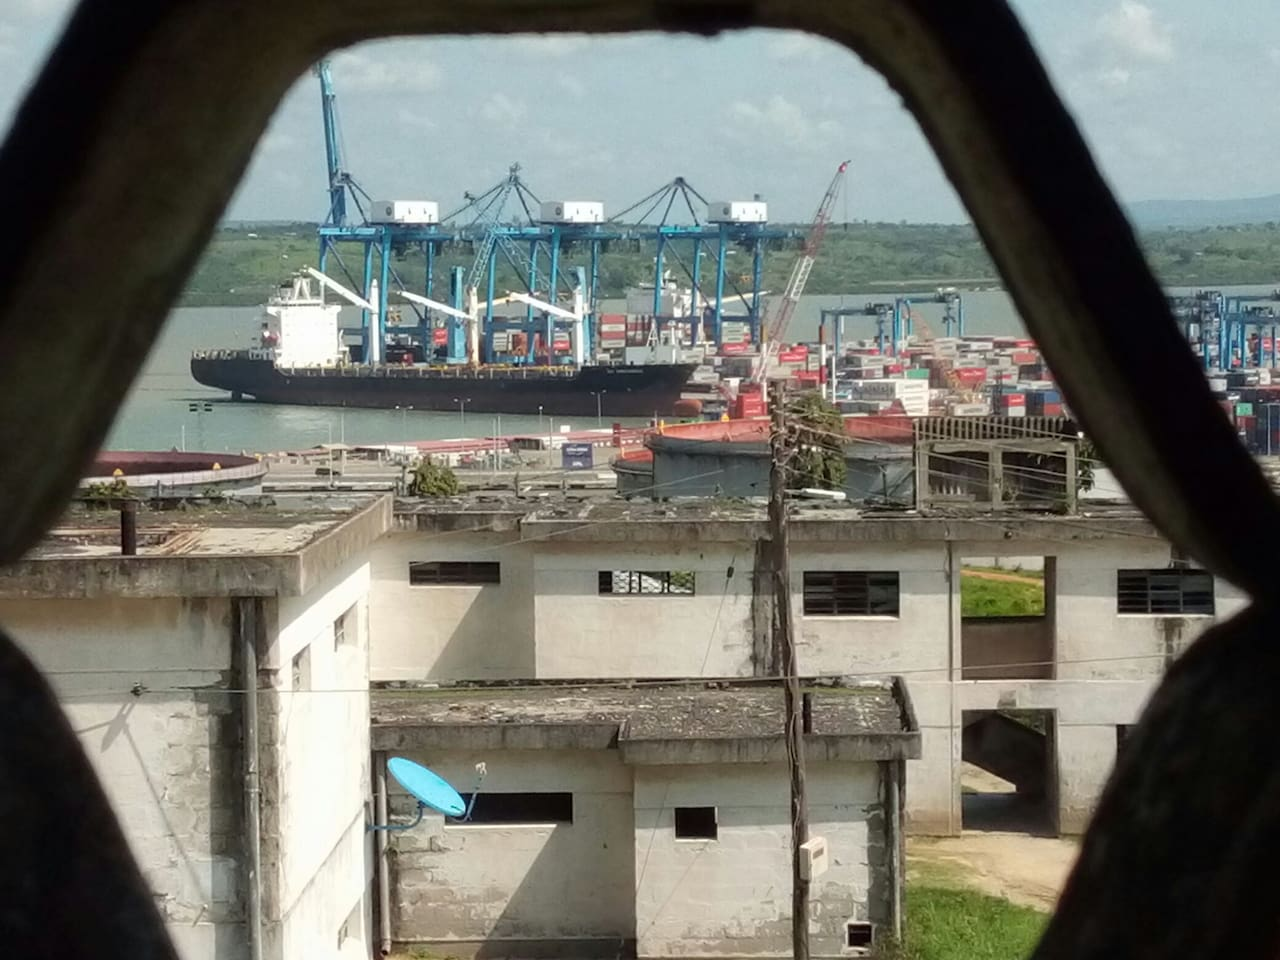 port view, naval base and Indian ocean.